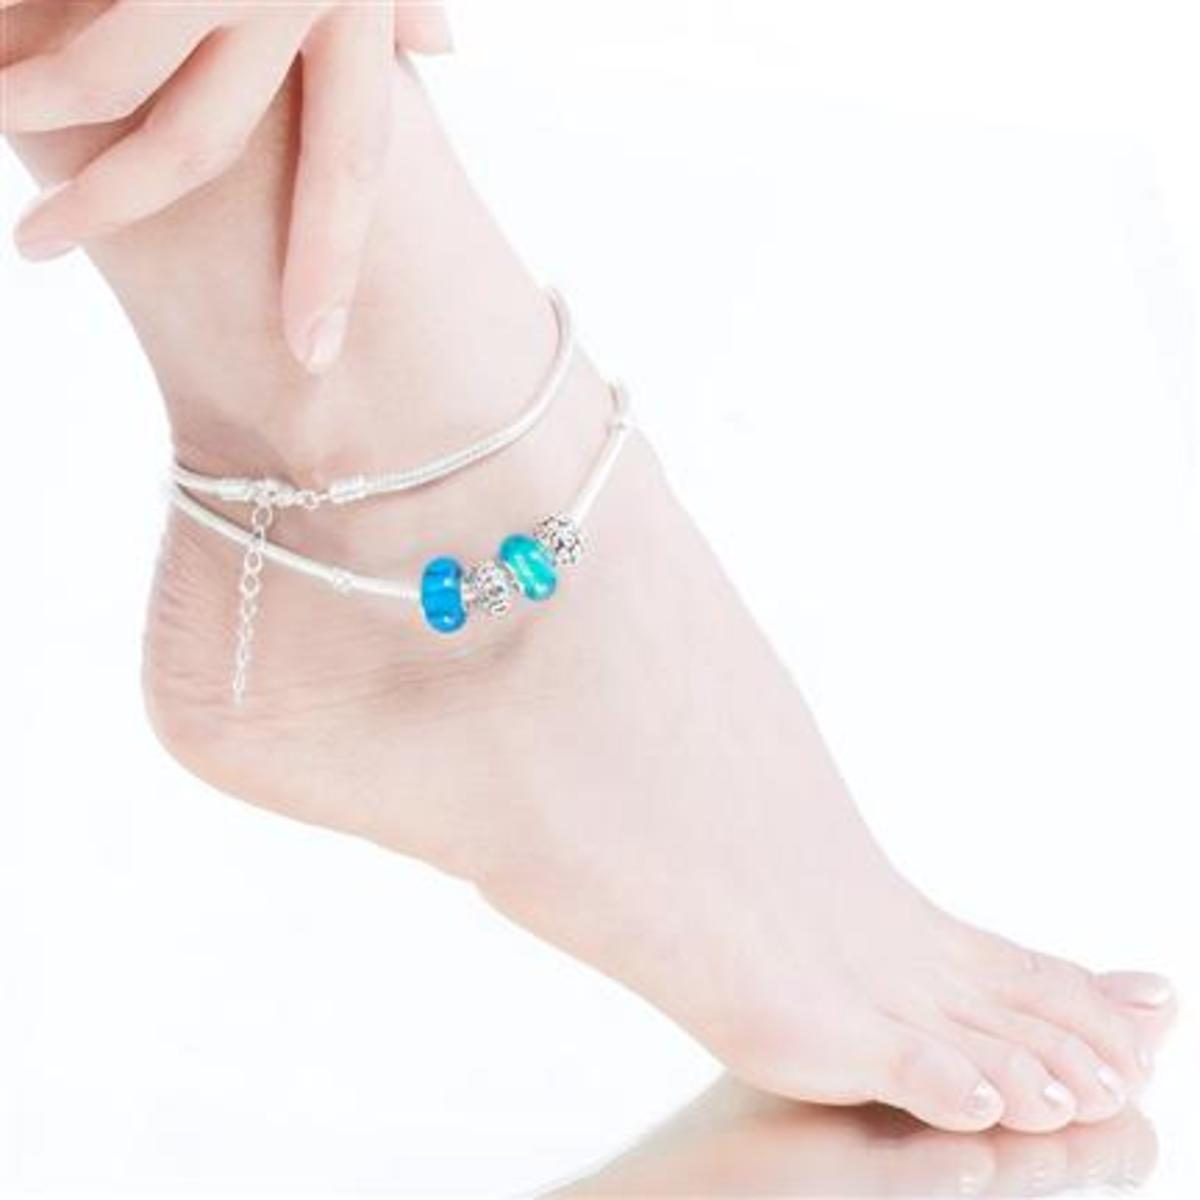 pandora anklets are going to be this summer